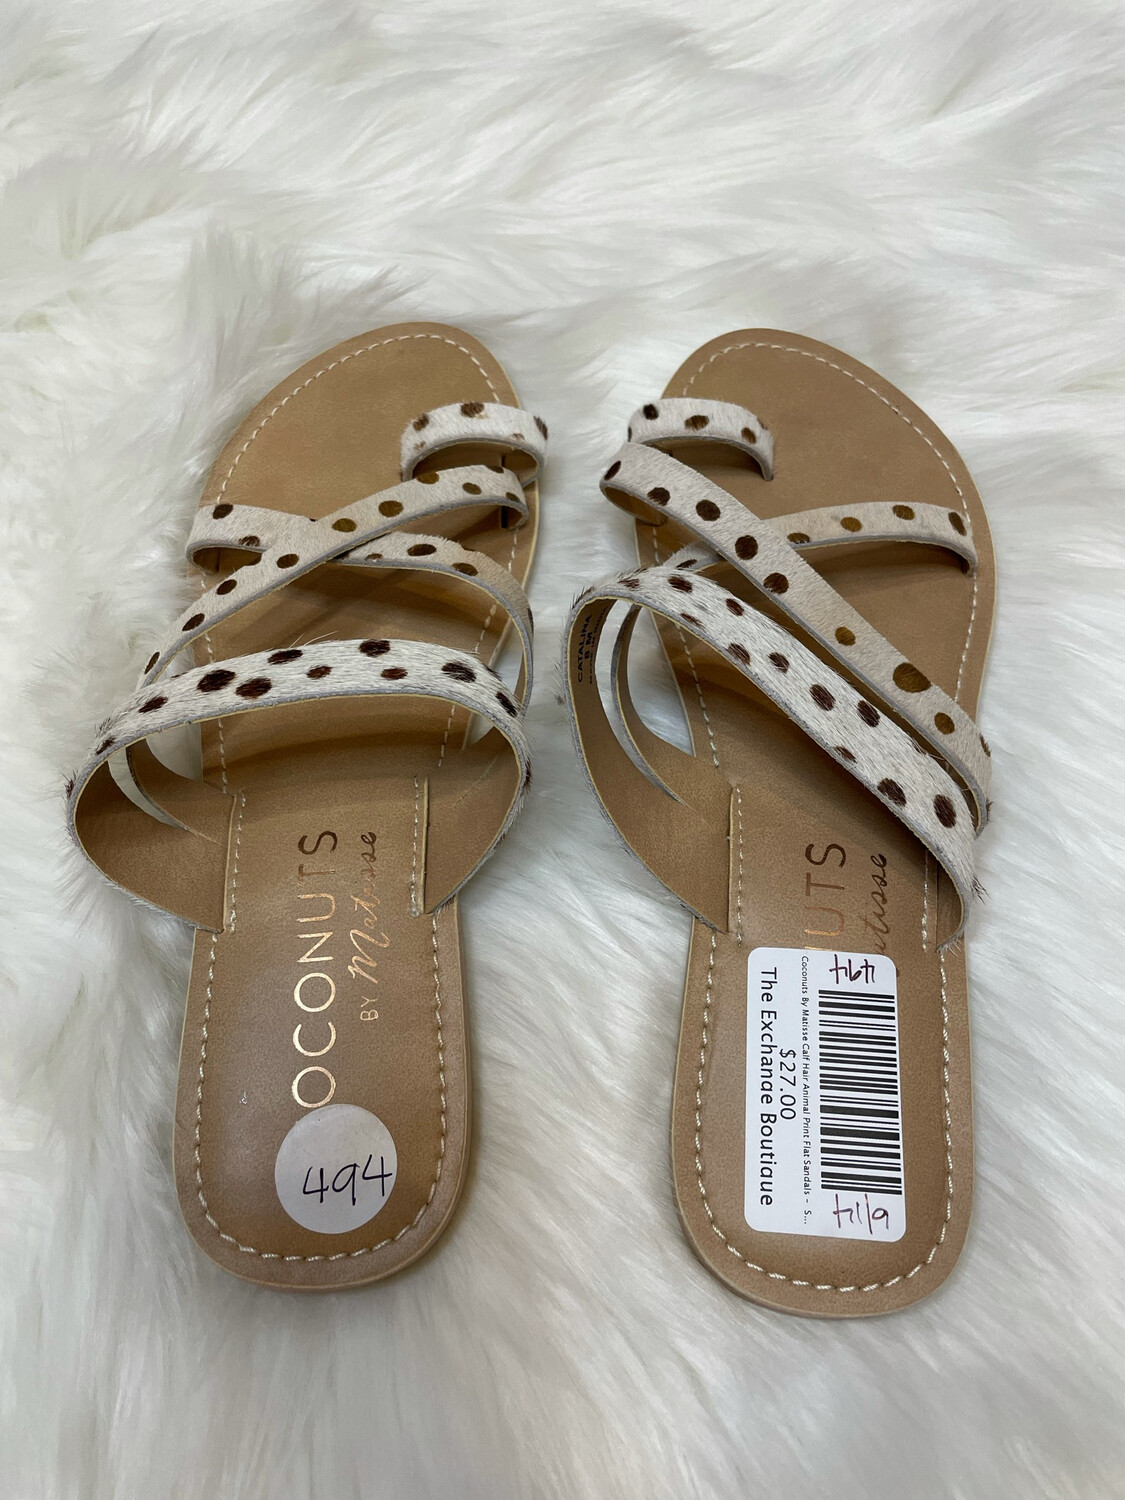 Coconuts By Matisse Calf Hair Animal Print Flat Sandals -  Size Size 8